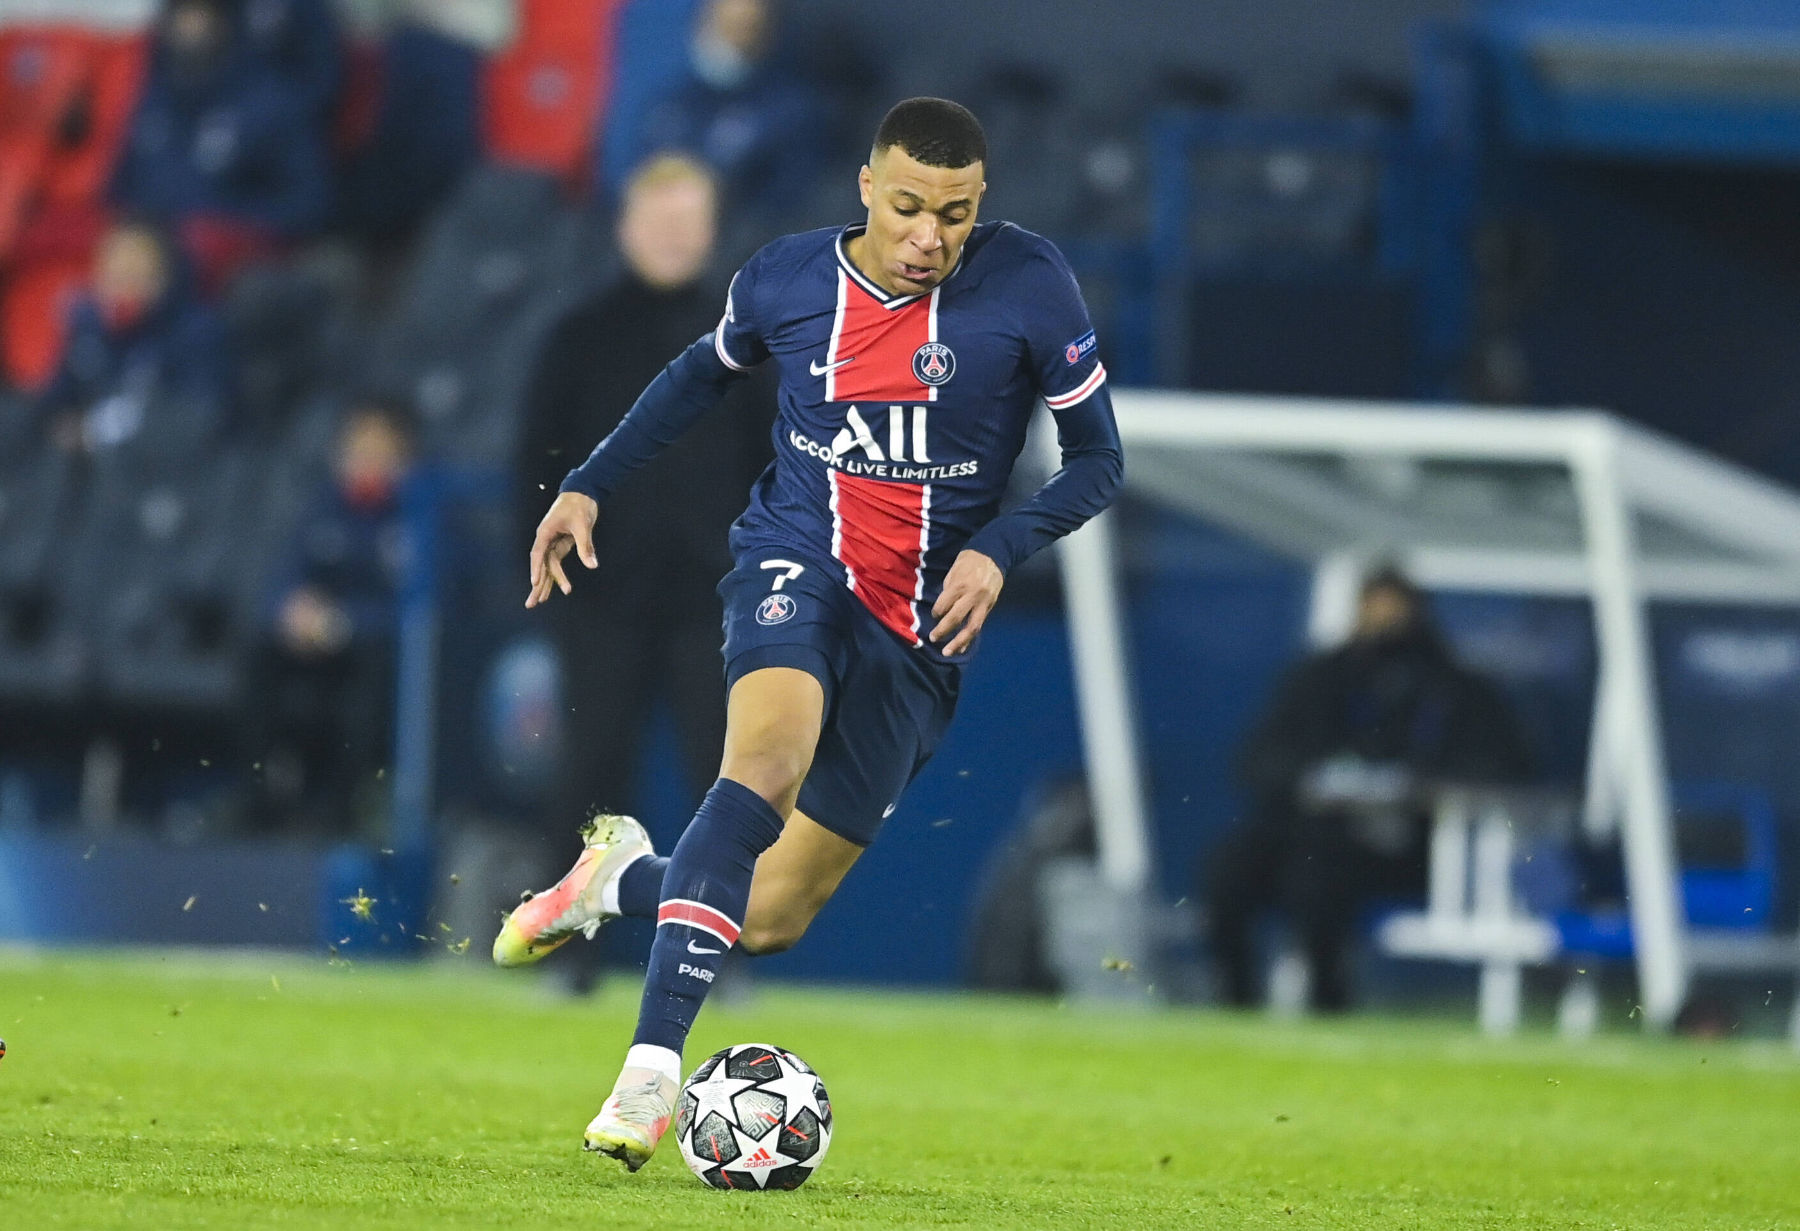 Video: Kylian Mbappé on His Relationship With Neymar - PSG ...